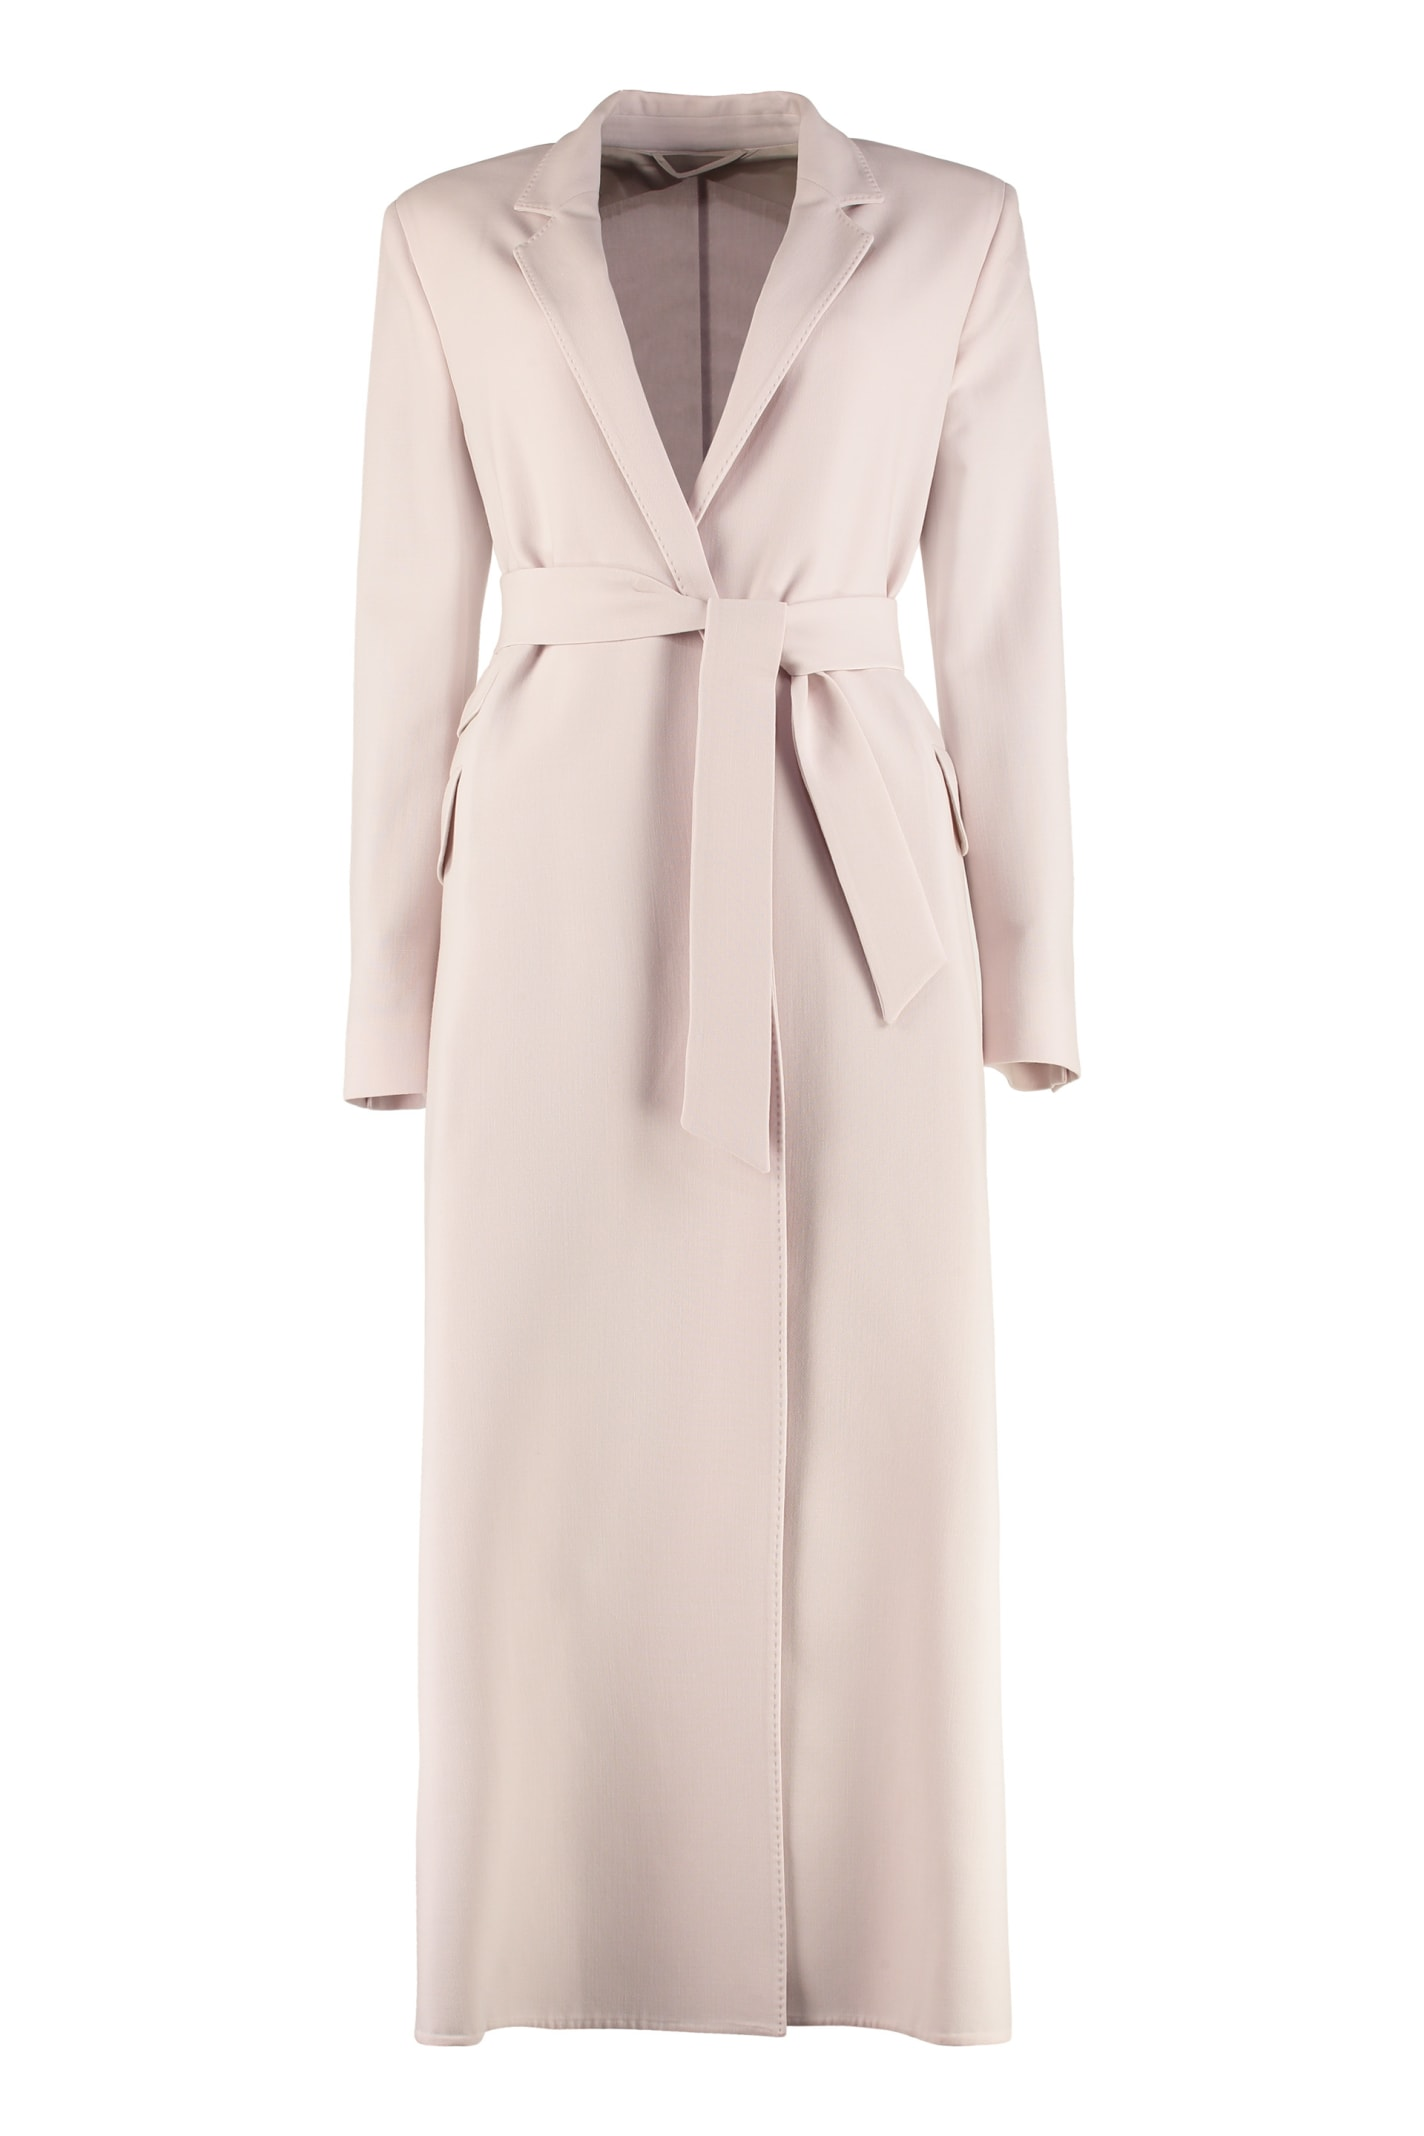 Max Mara Tiberio Virgin Wool Coat